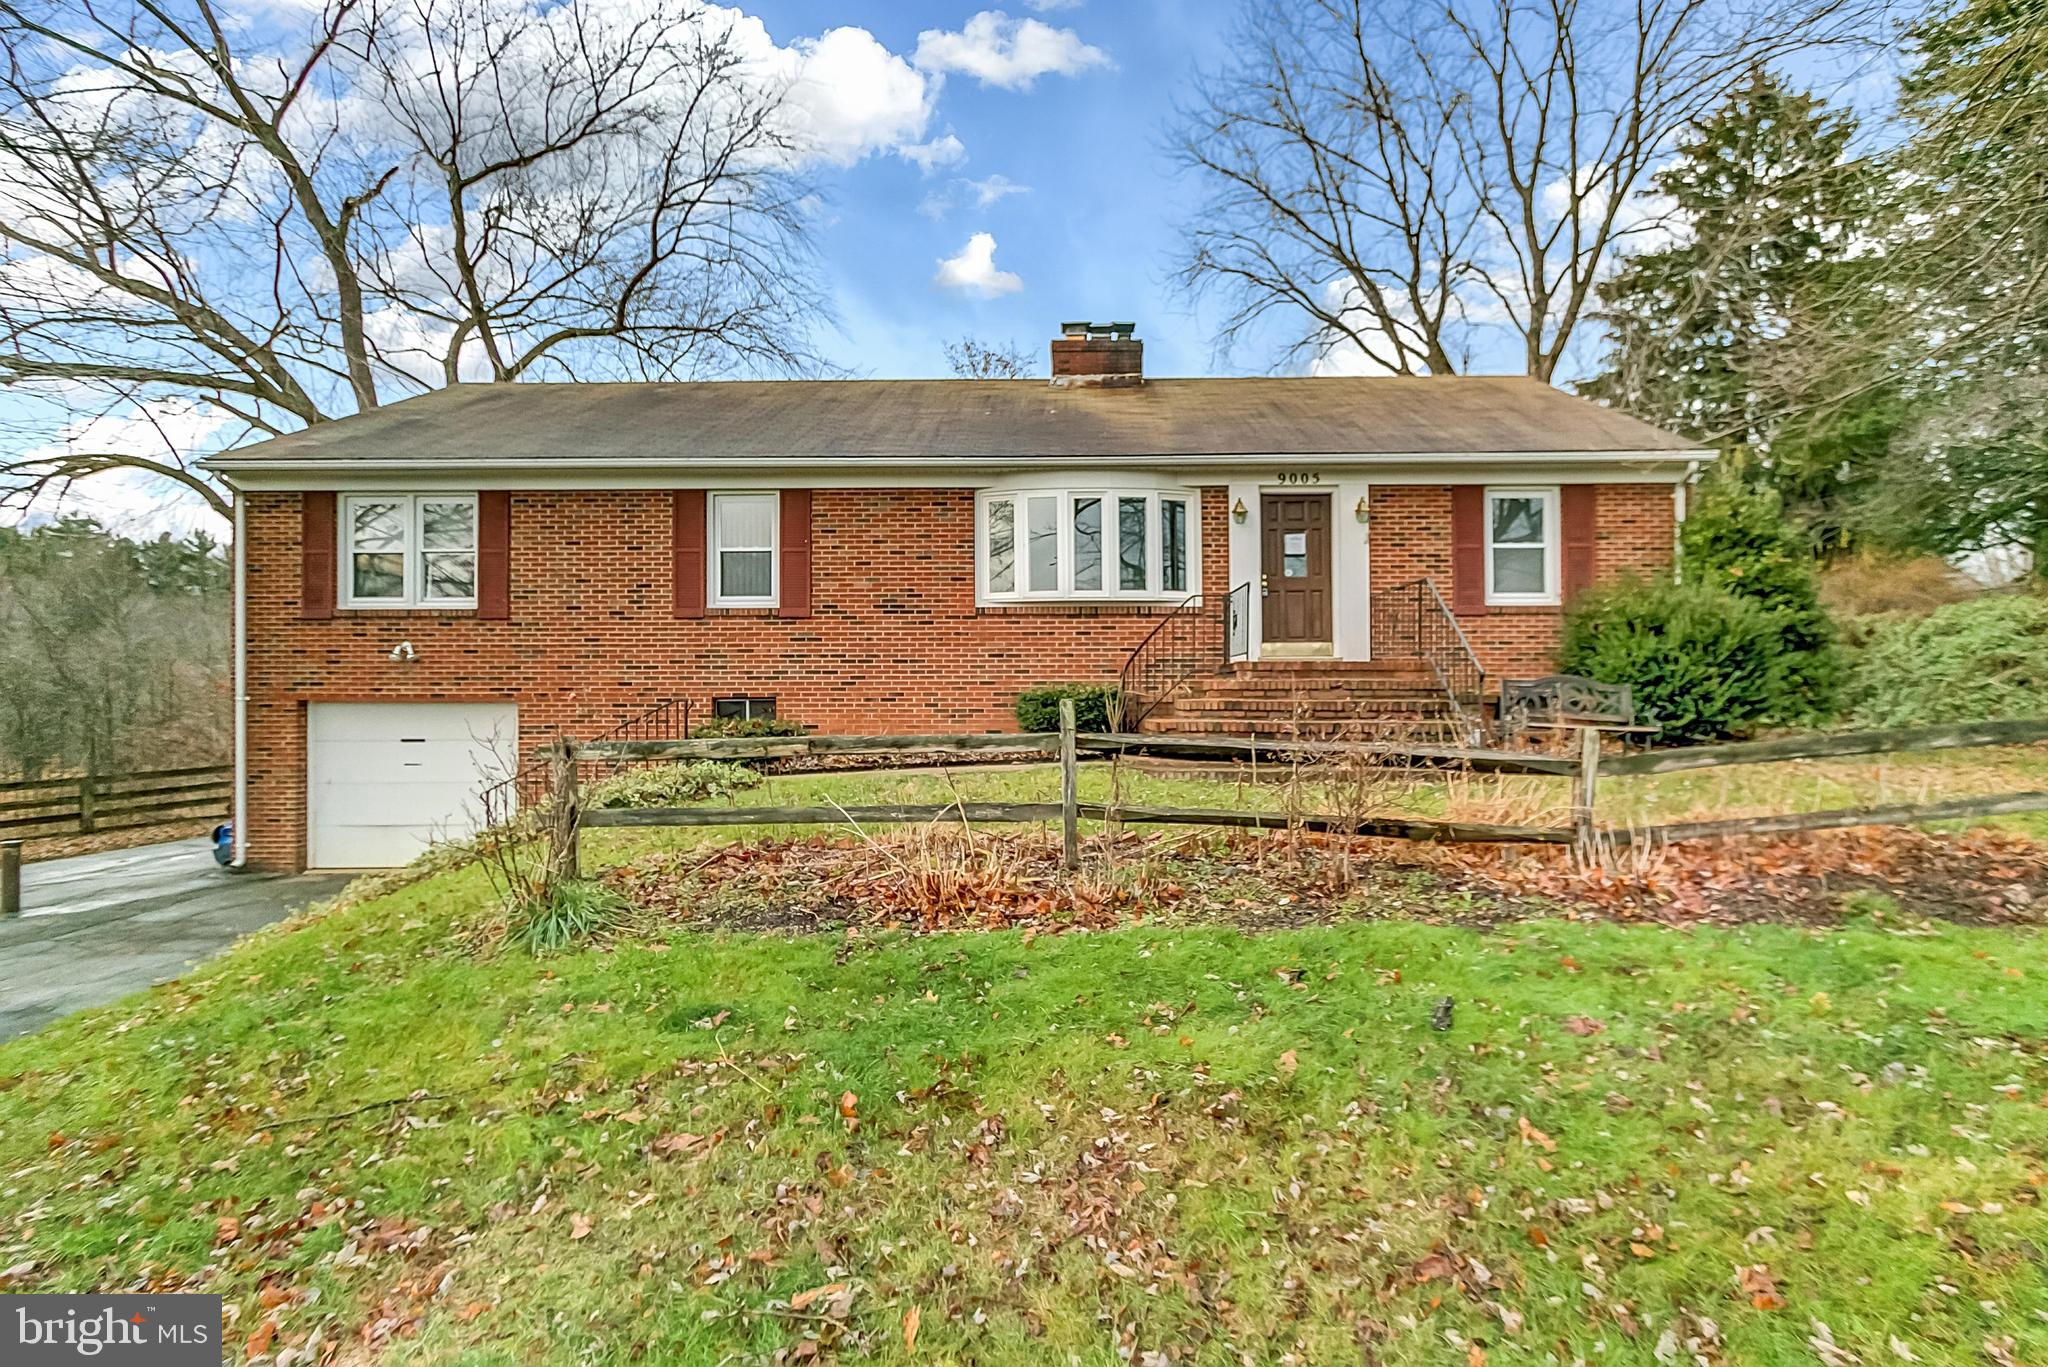 AMAZING NEAR 2 ACRE OPPORTUNITY WITH POOL JUST OUTSIDE THE CITY IN SOUGHT AFTER NEIGHBORHOOD. MOVE I